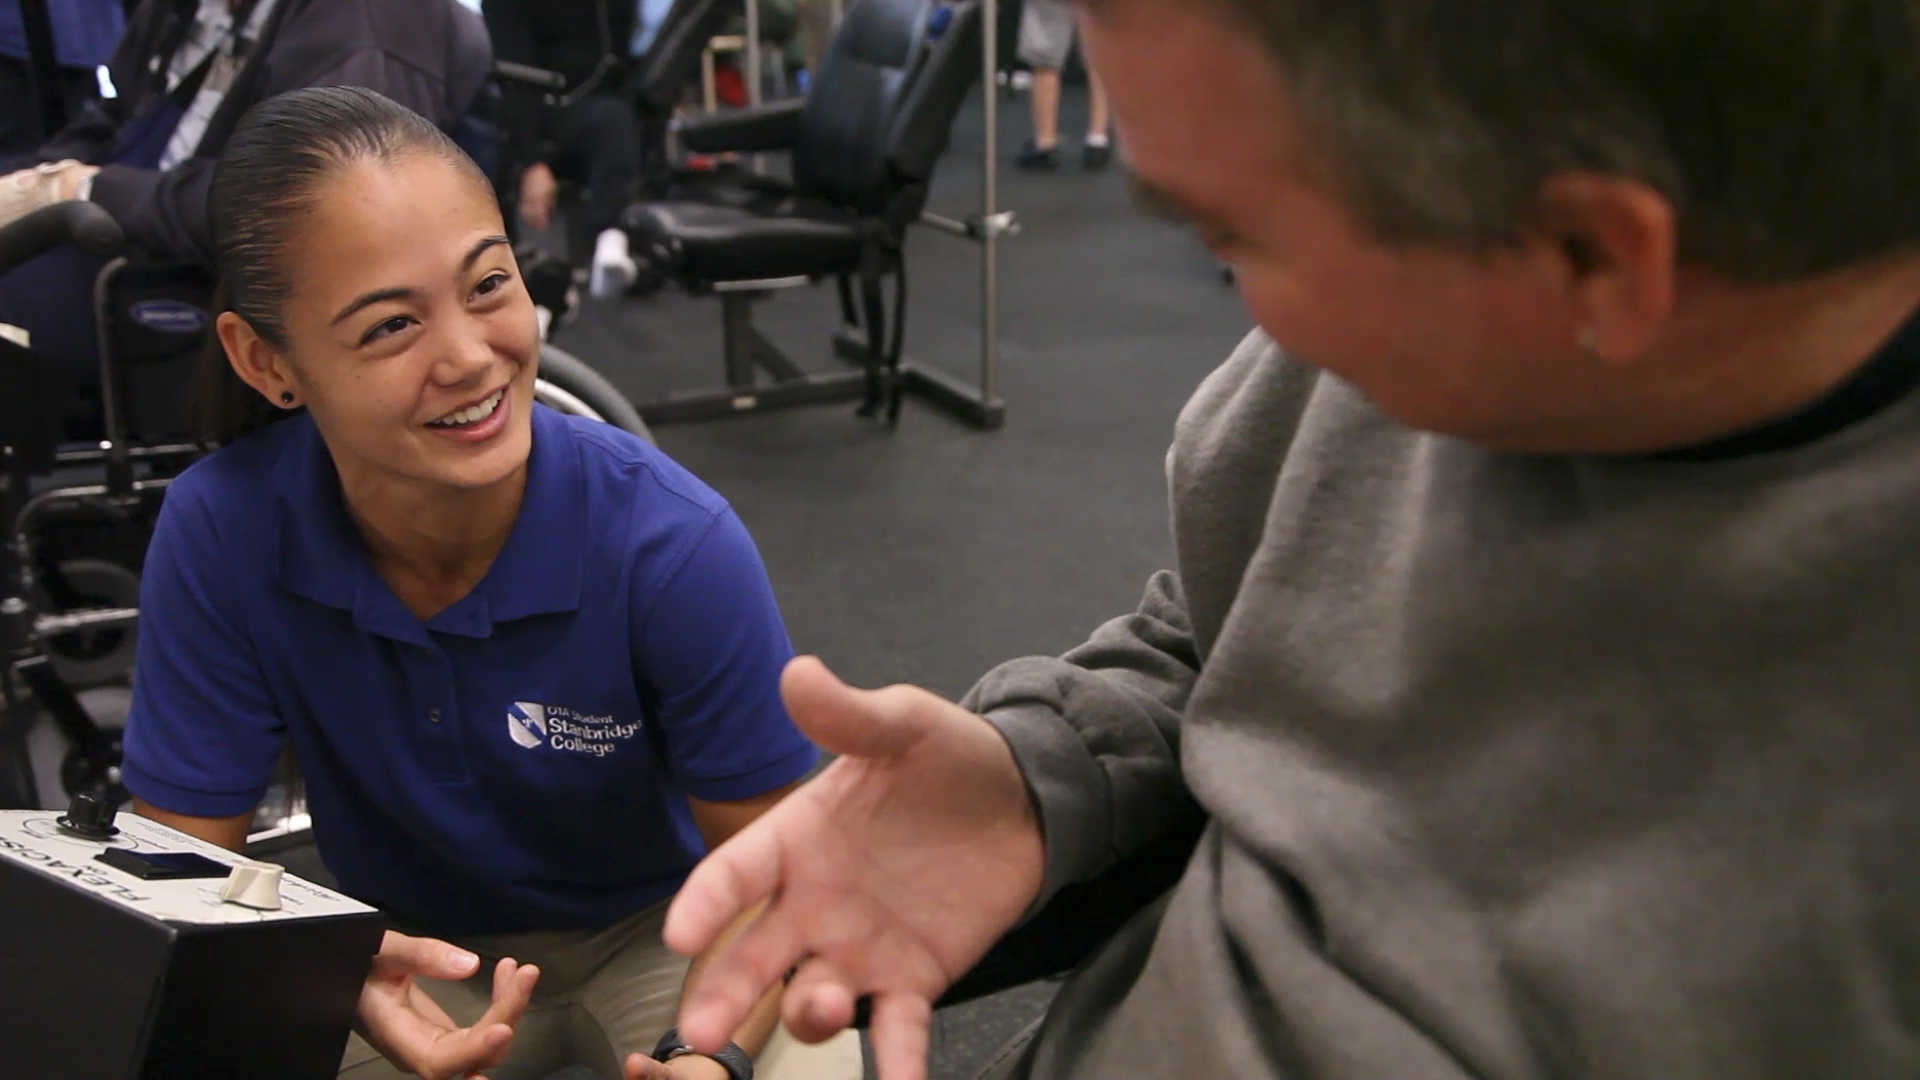 OTA Student Gets Up Close with Rehabilitation Technology through Service